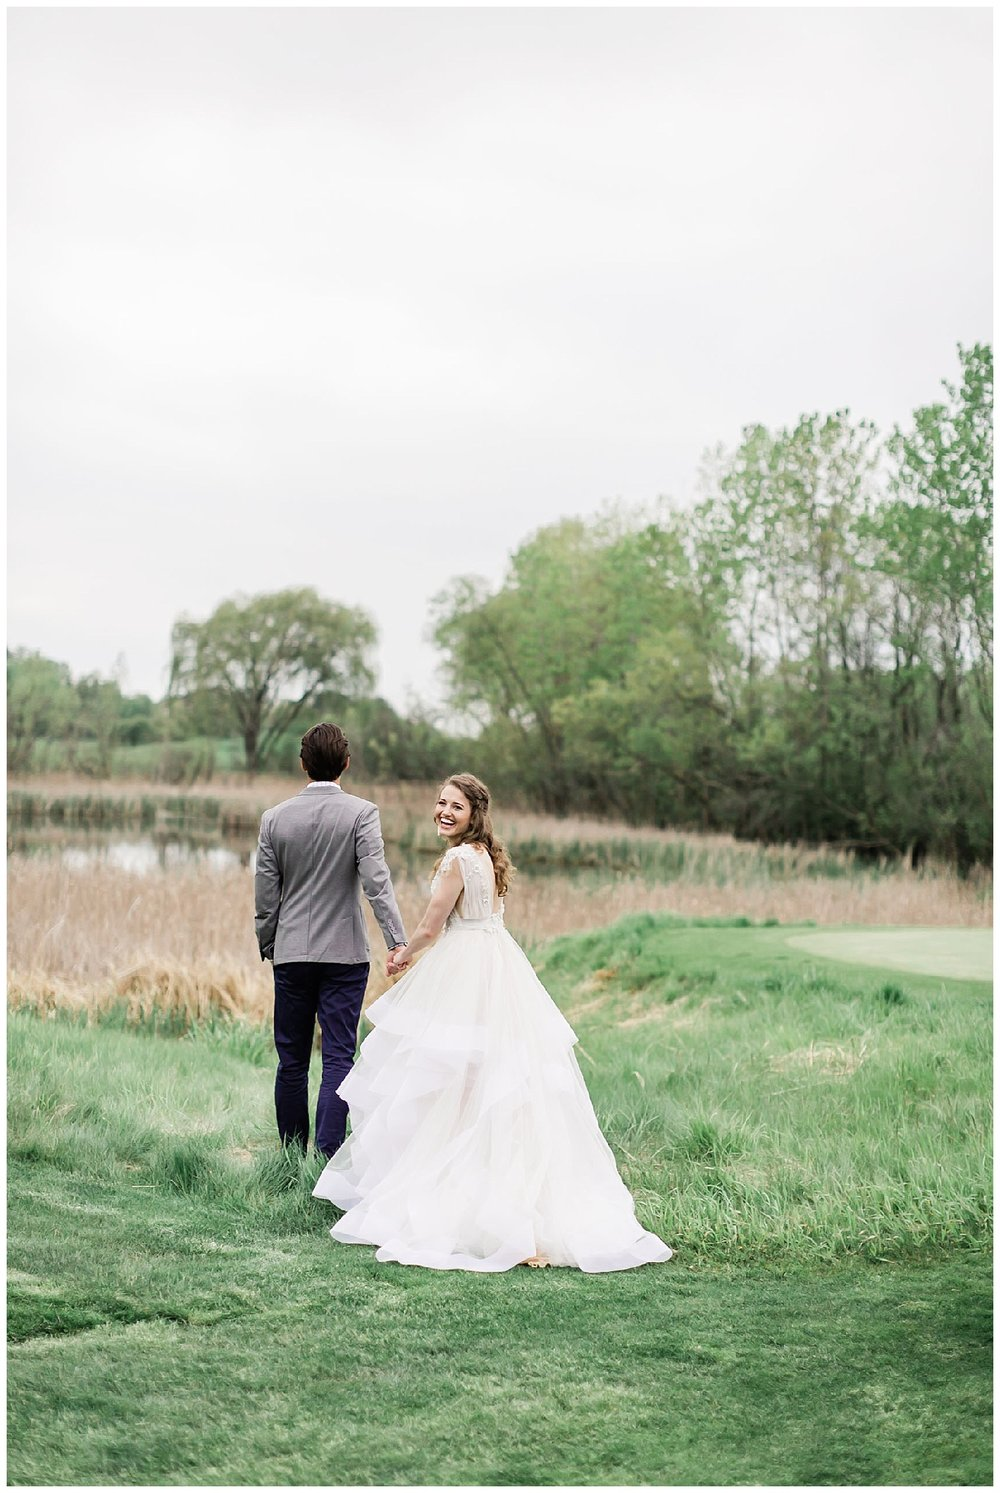 Elizabeth M Photography Northern Virginia Destination Wedding and Elopement Photographer Adventure Photography Zion National Park_0201.jpg